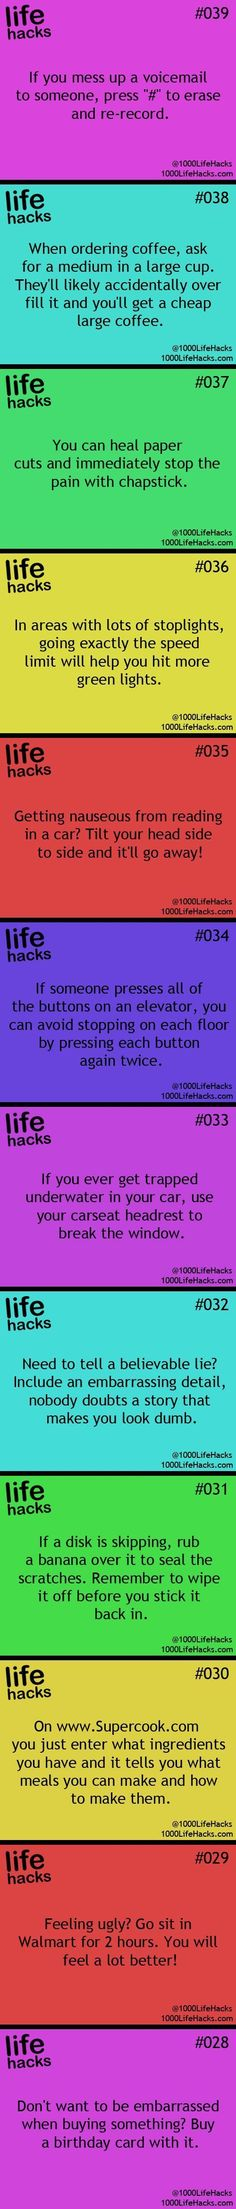 Hacks everyone should know!! The last one should not be used when buying something such as feminine hygiene products or condoms.